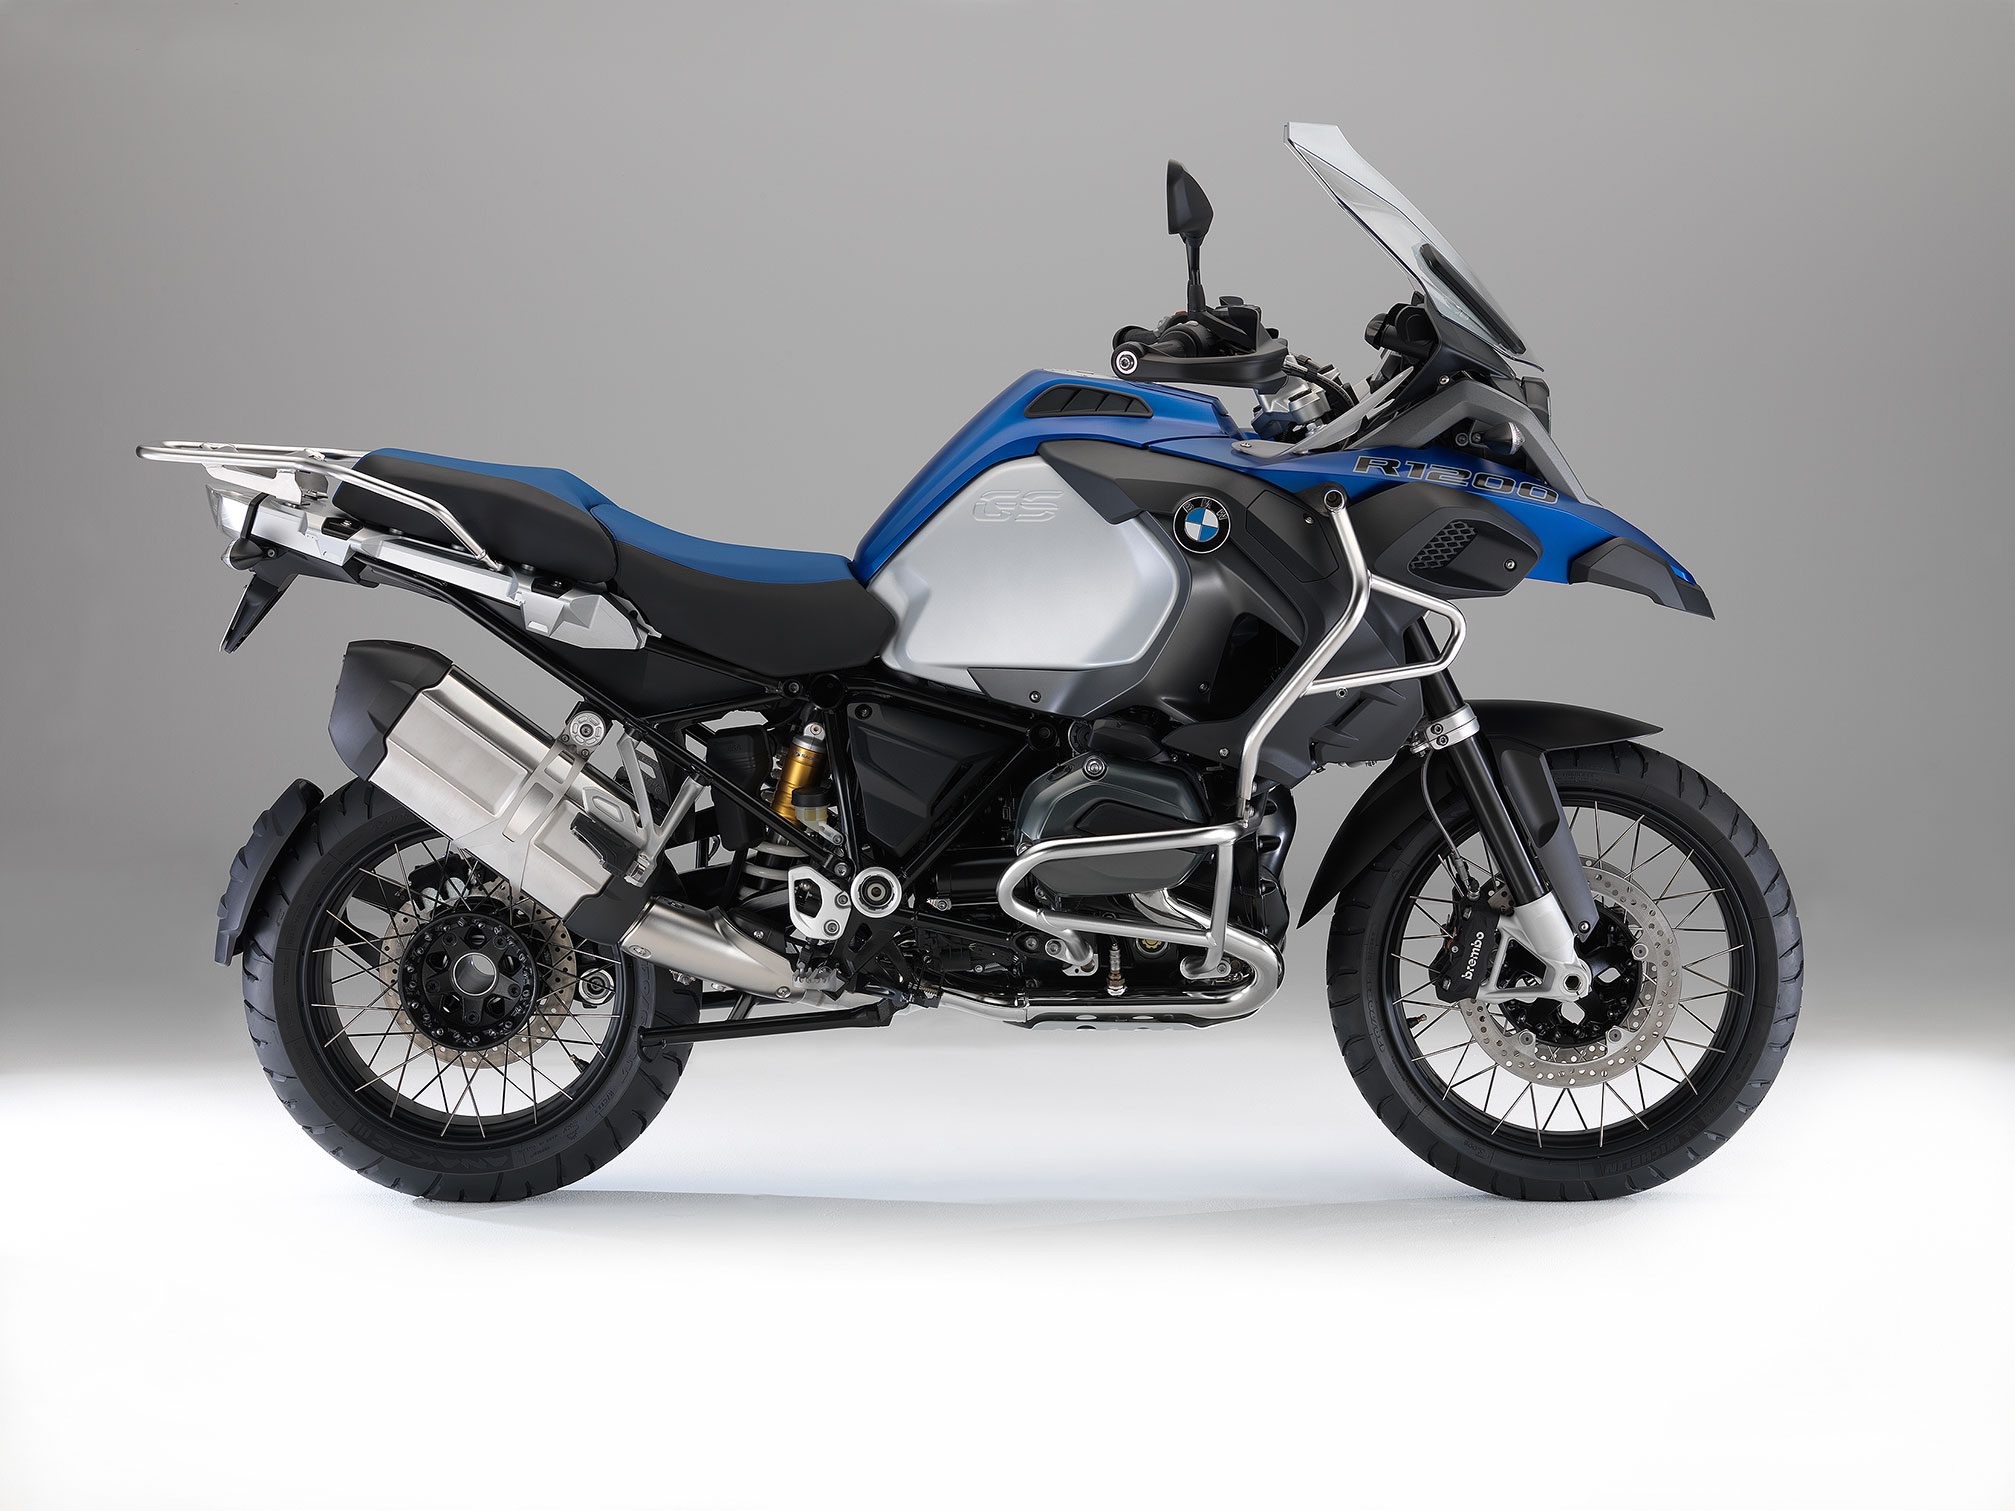 2015 BMW R1200GS Adventure